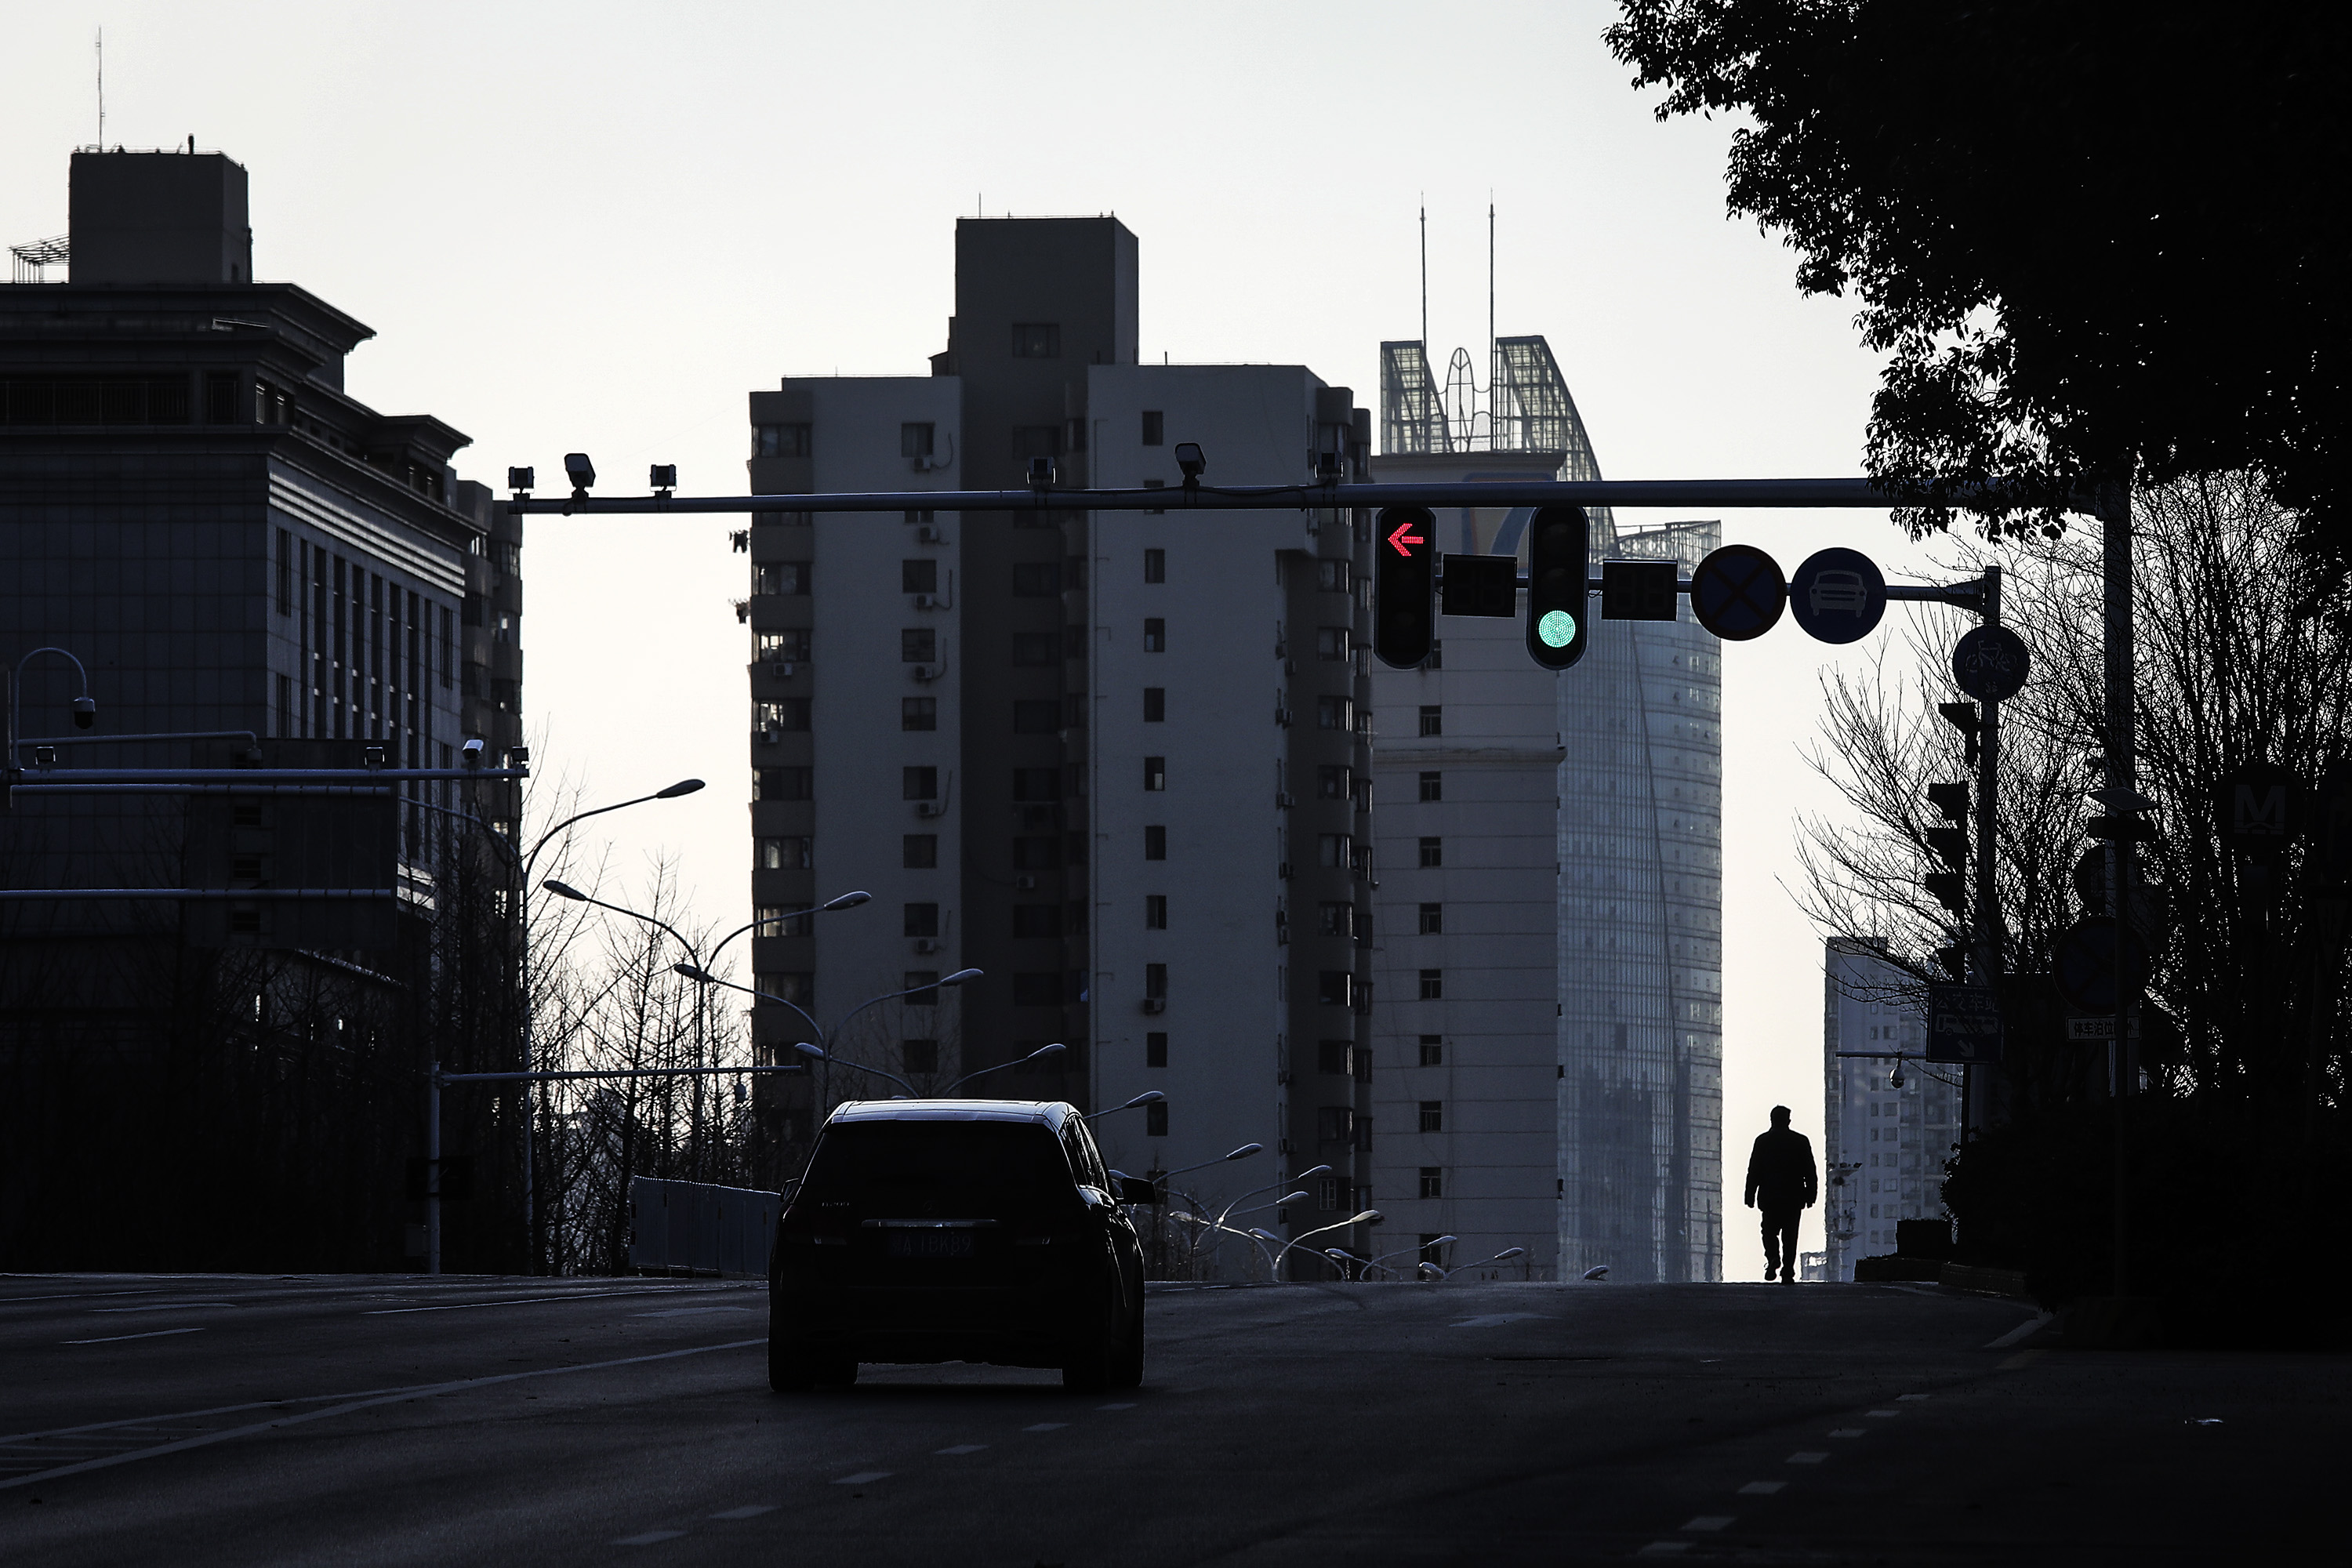 A man walk in the street at Optical Valley on February 16, 2020 in Wuhan, Hubei province, China. Flights, trains and public transport including buses, subway and ferry services have been closed for 25 days. The number of those who have died from the Wuhan coronavirus, known as 2019-nCoV, in China climbed to 1667. (Photo by Getty Images)